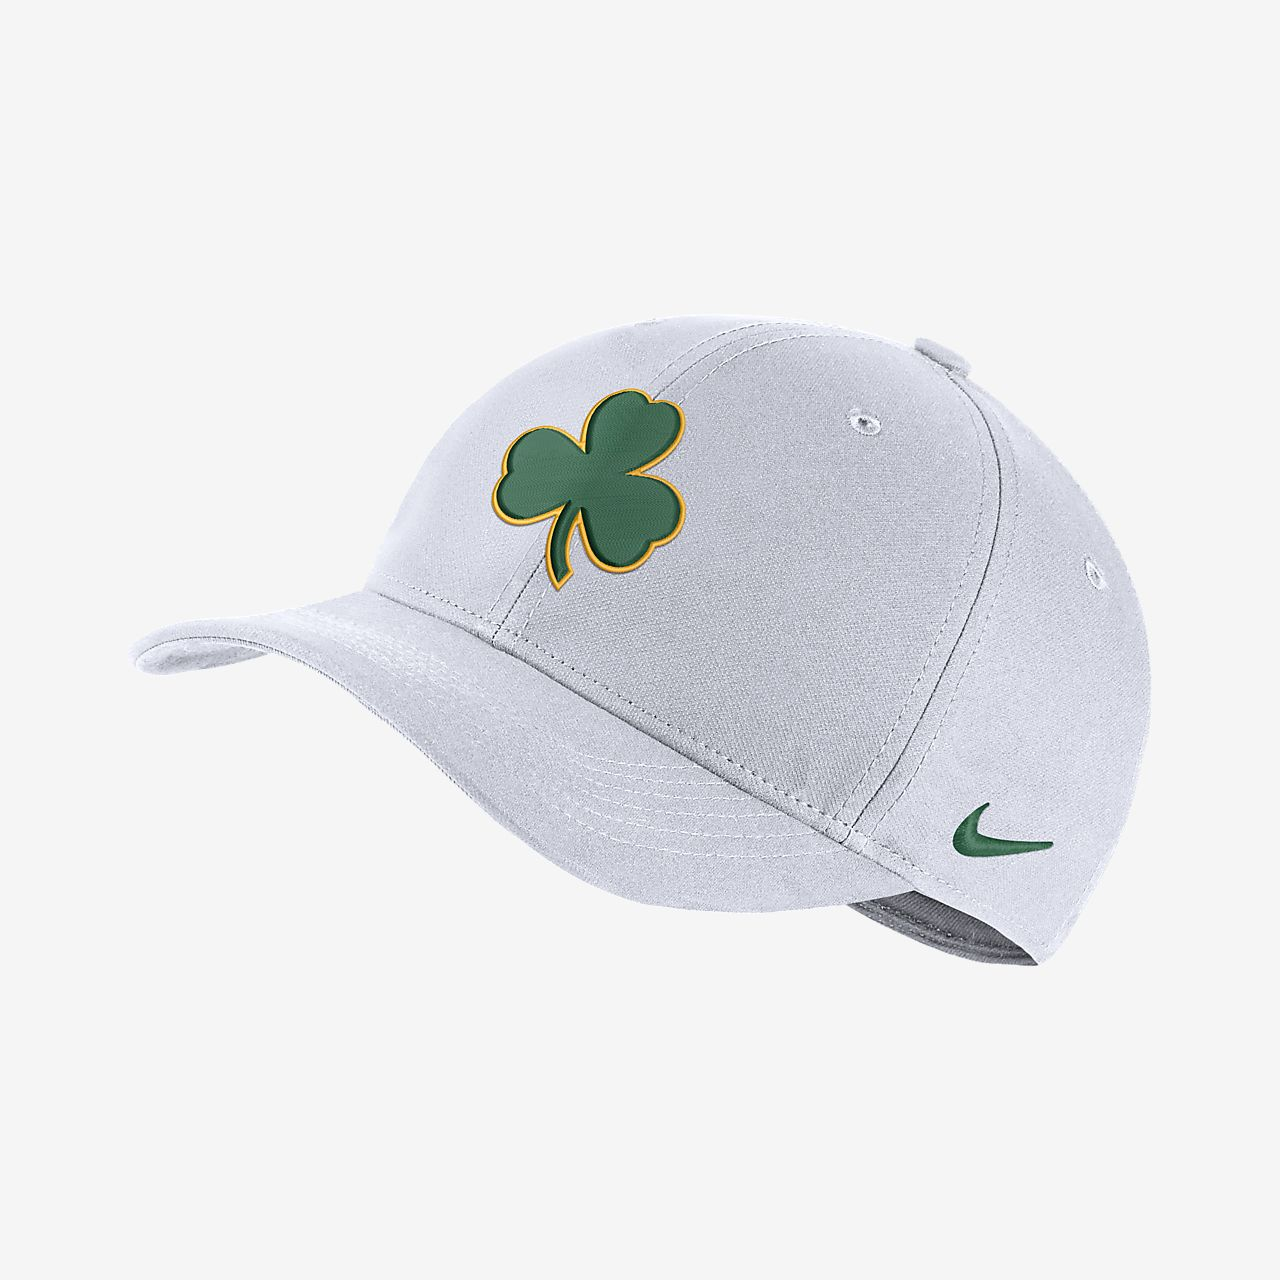 c83a555a5 Boston Celtics City Edition Nike AeroBill Classic99 NBA Hat. Nike.com SK